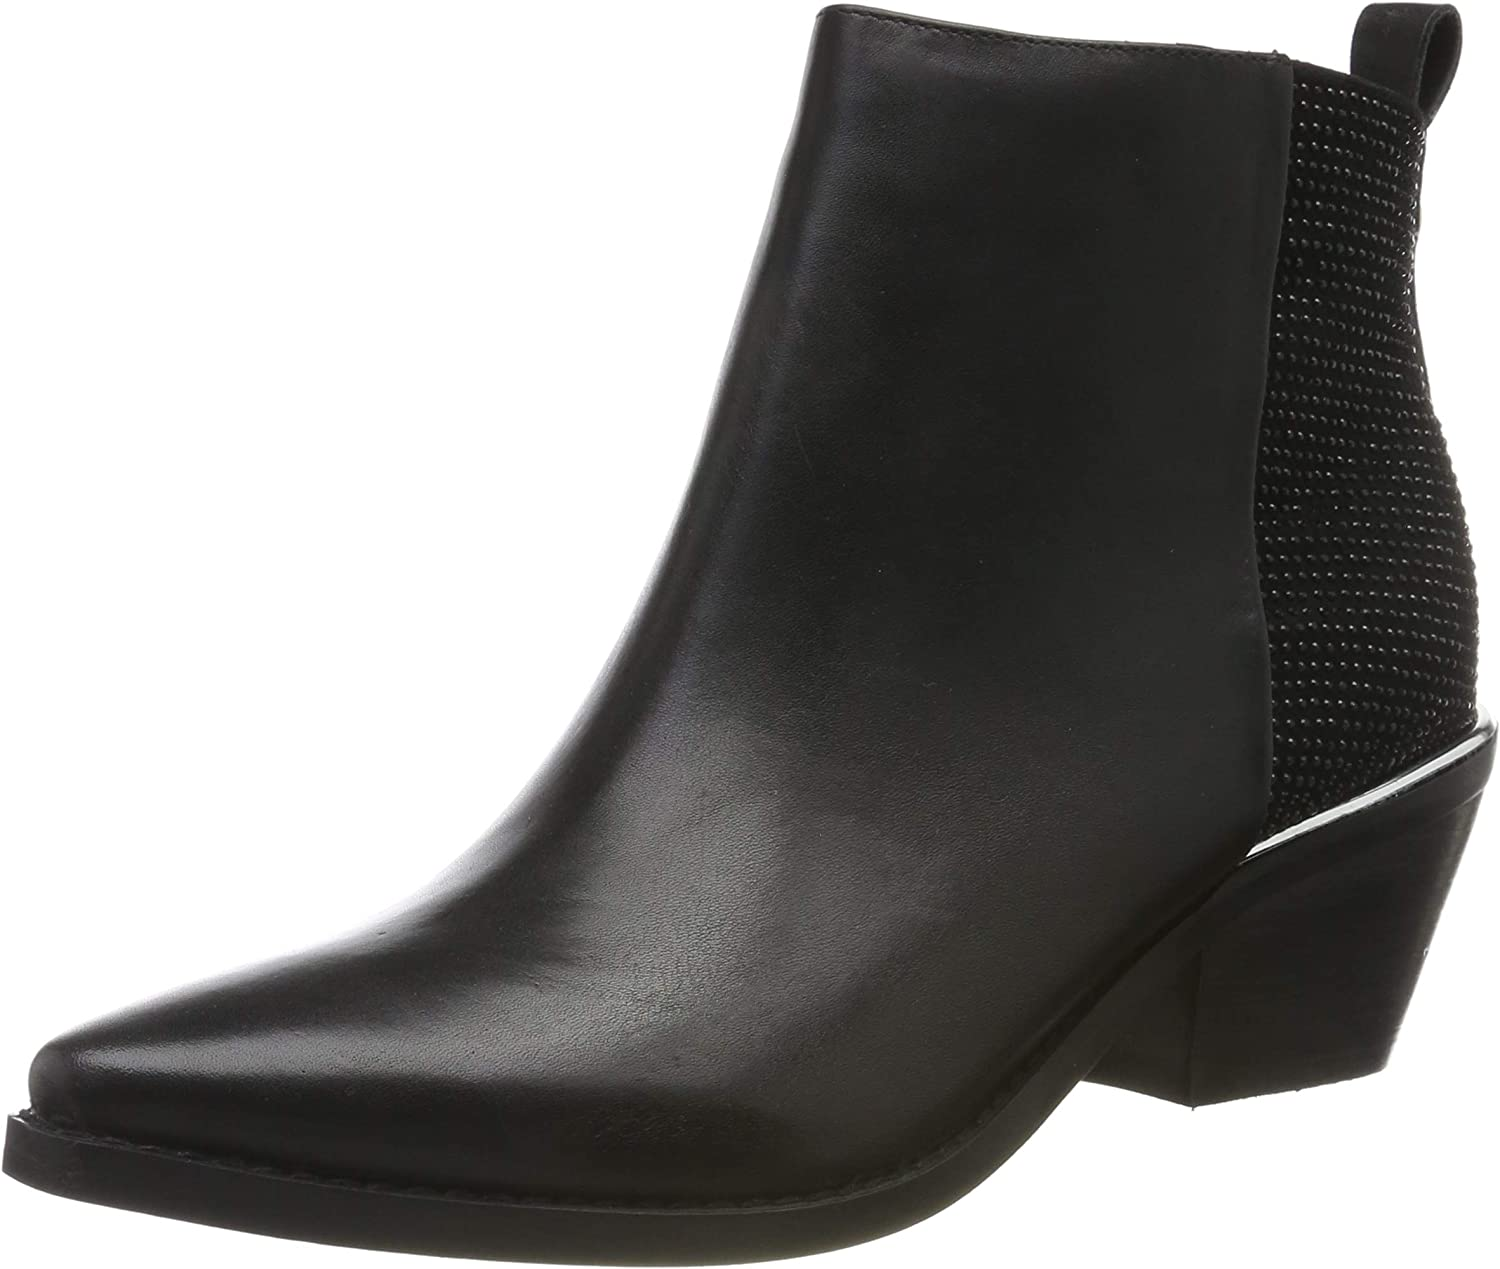 Guess Nishe/Stivaletto (Bootie)/Leat, Botines para Mujer